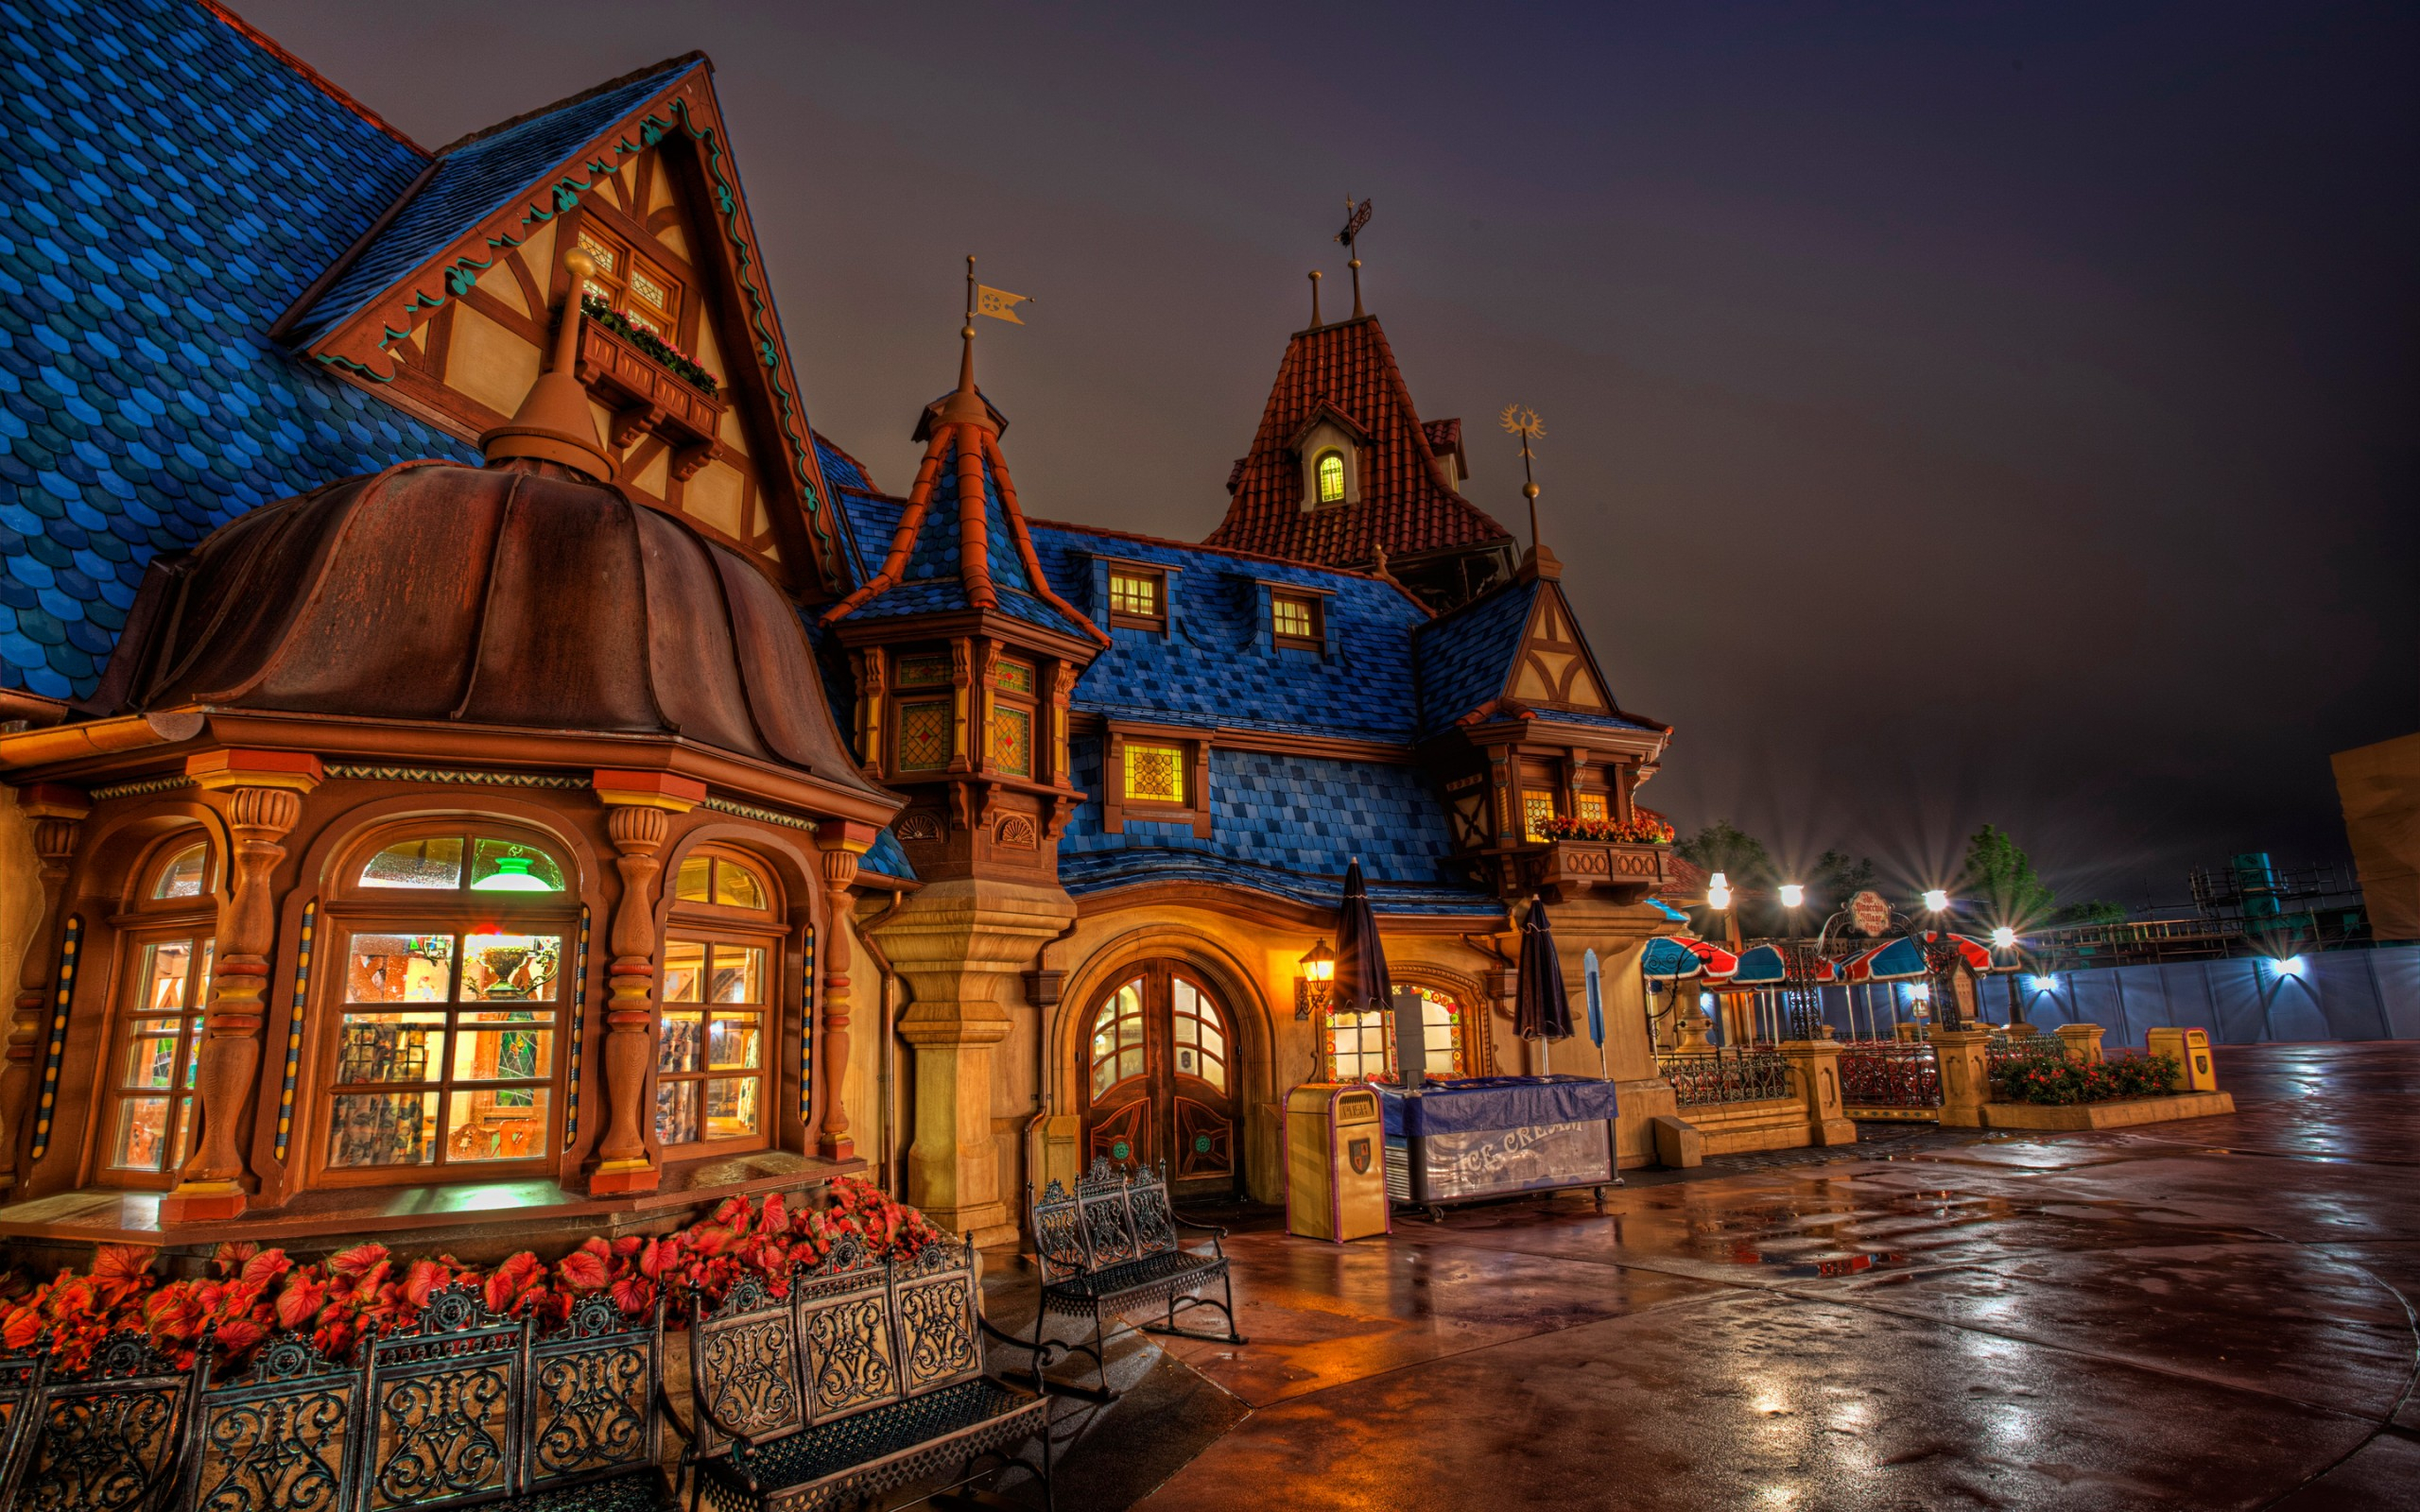 Disneyland wallpaper 29923 2560x1600